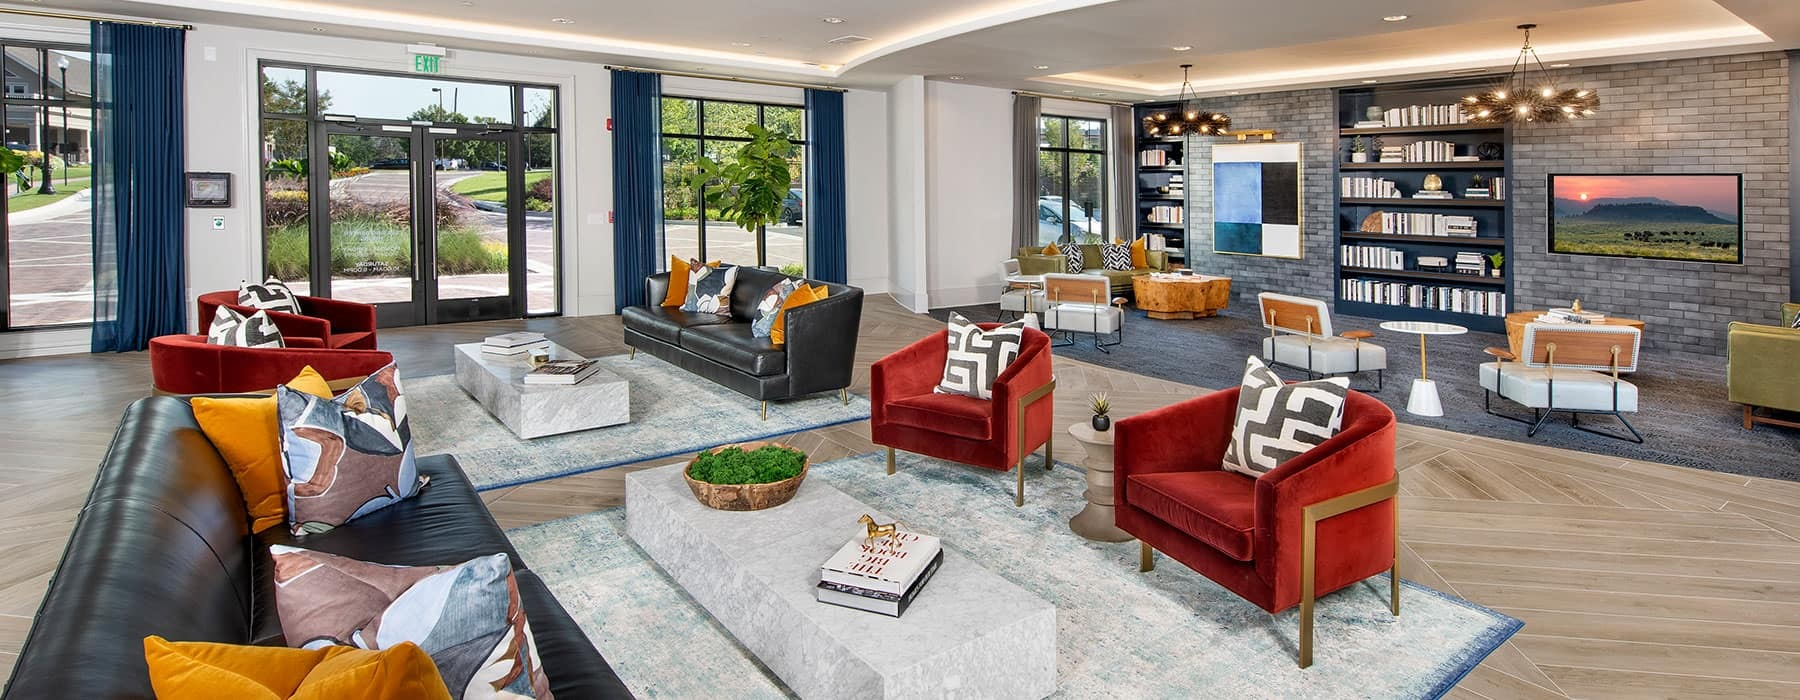 spacious lounge area with ample shared seating and modern decor